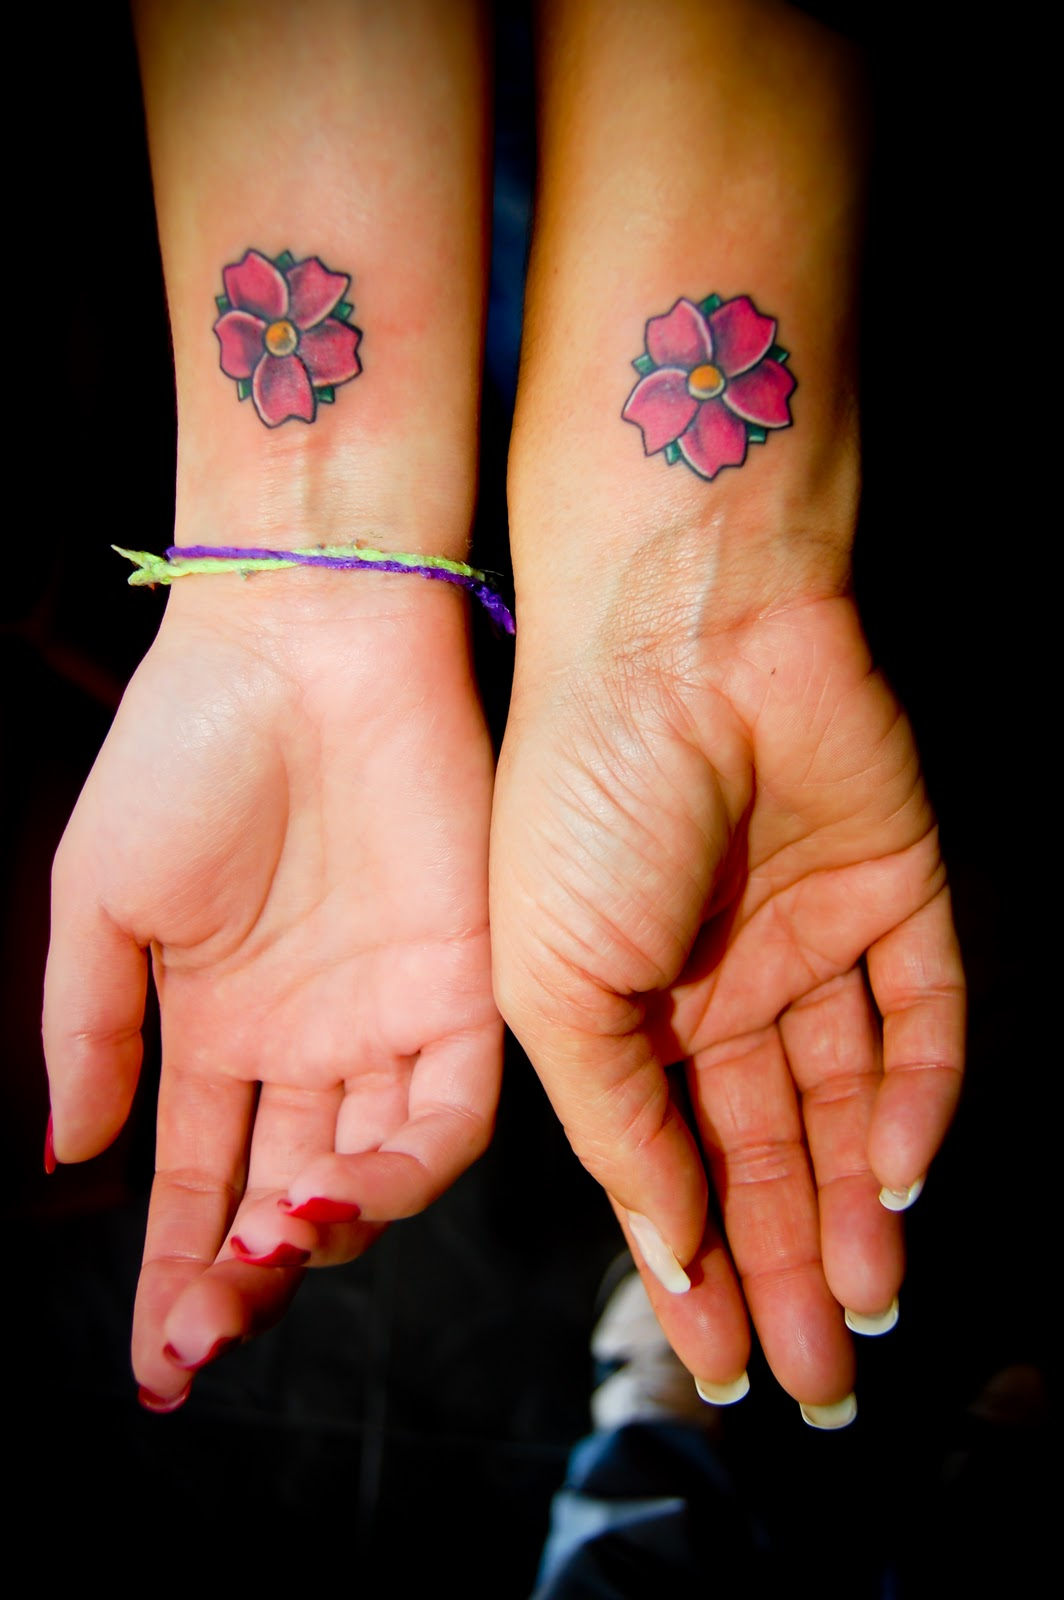 Matching Images >> Friendship Tattoos Designs, Ideas and Meaning | Tattoos For You